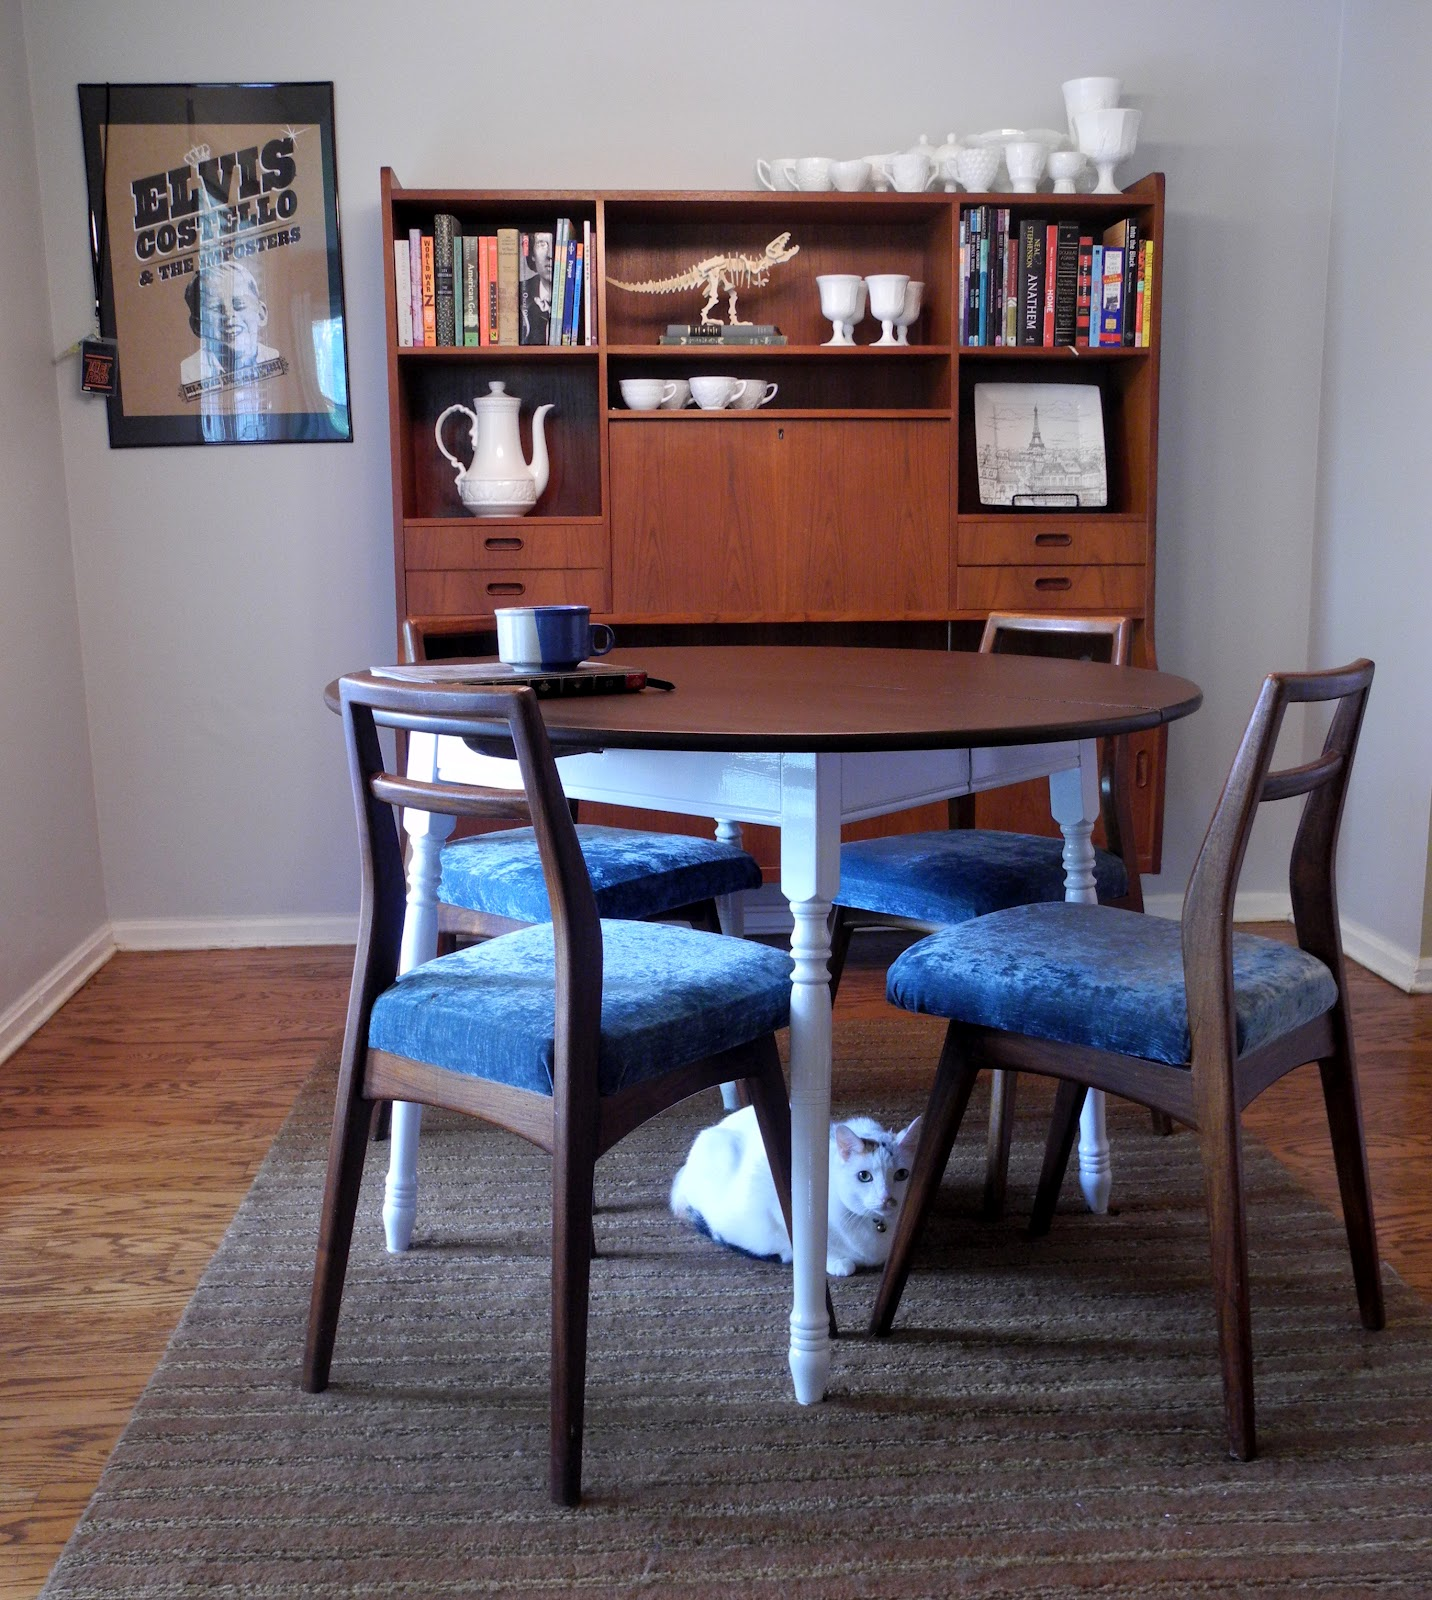 Librarian tells all kitchen table makeover stripping and refinishing wood furniture or why - Kitchen table redo ...